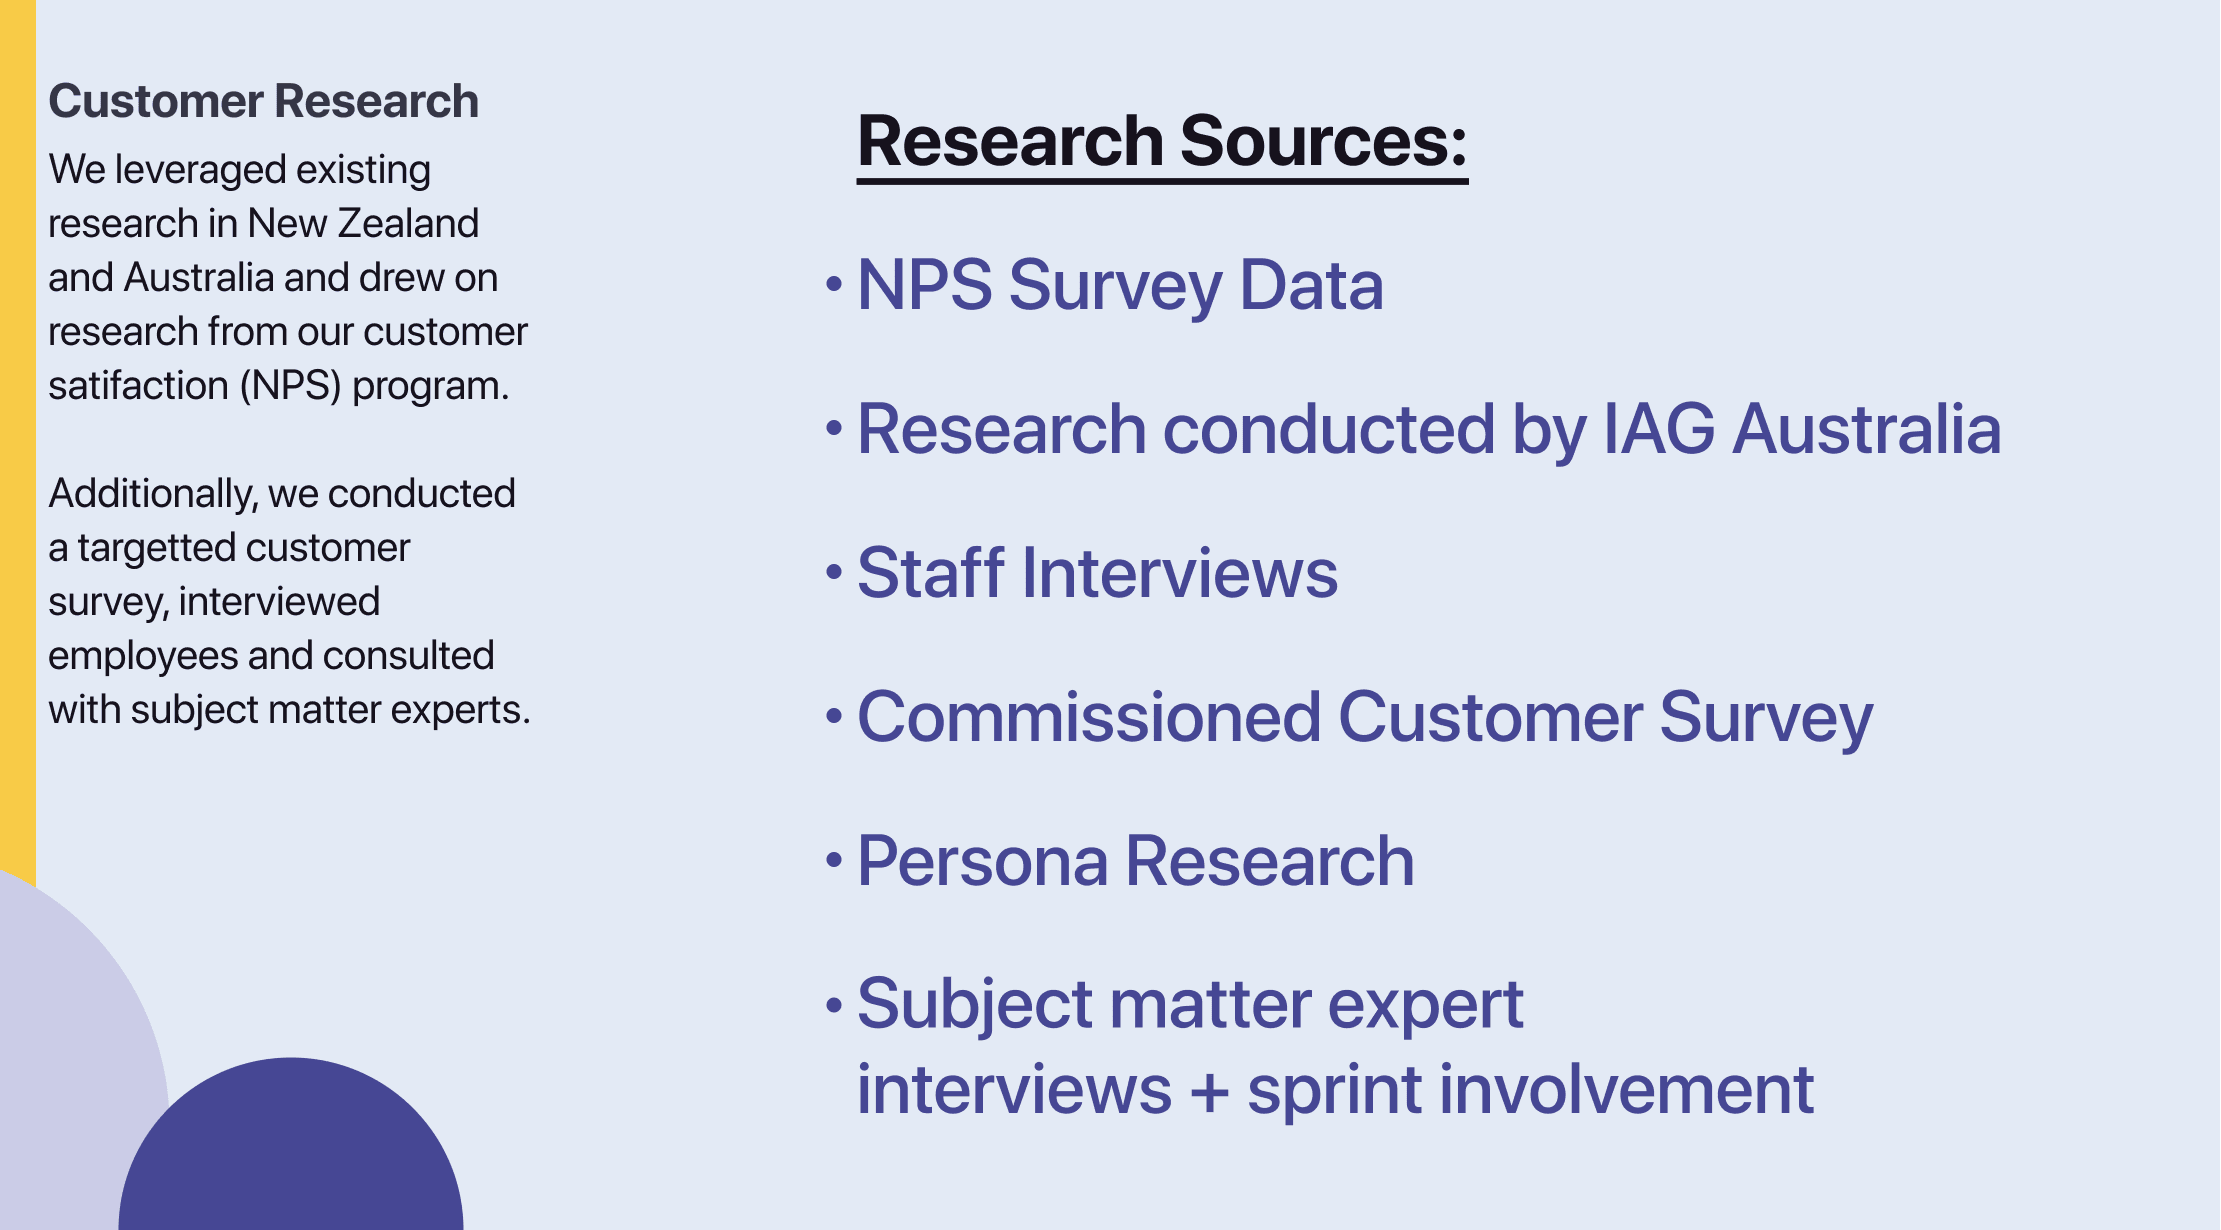 Our Customer Research sources relied on existing internal research, a survey completed by 350 customers, and interviews with internal Subject Matter Experts